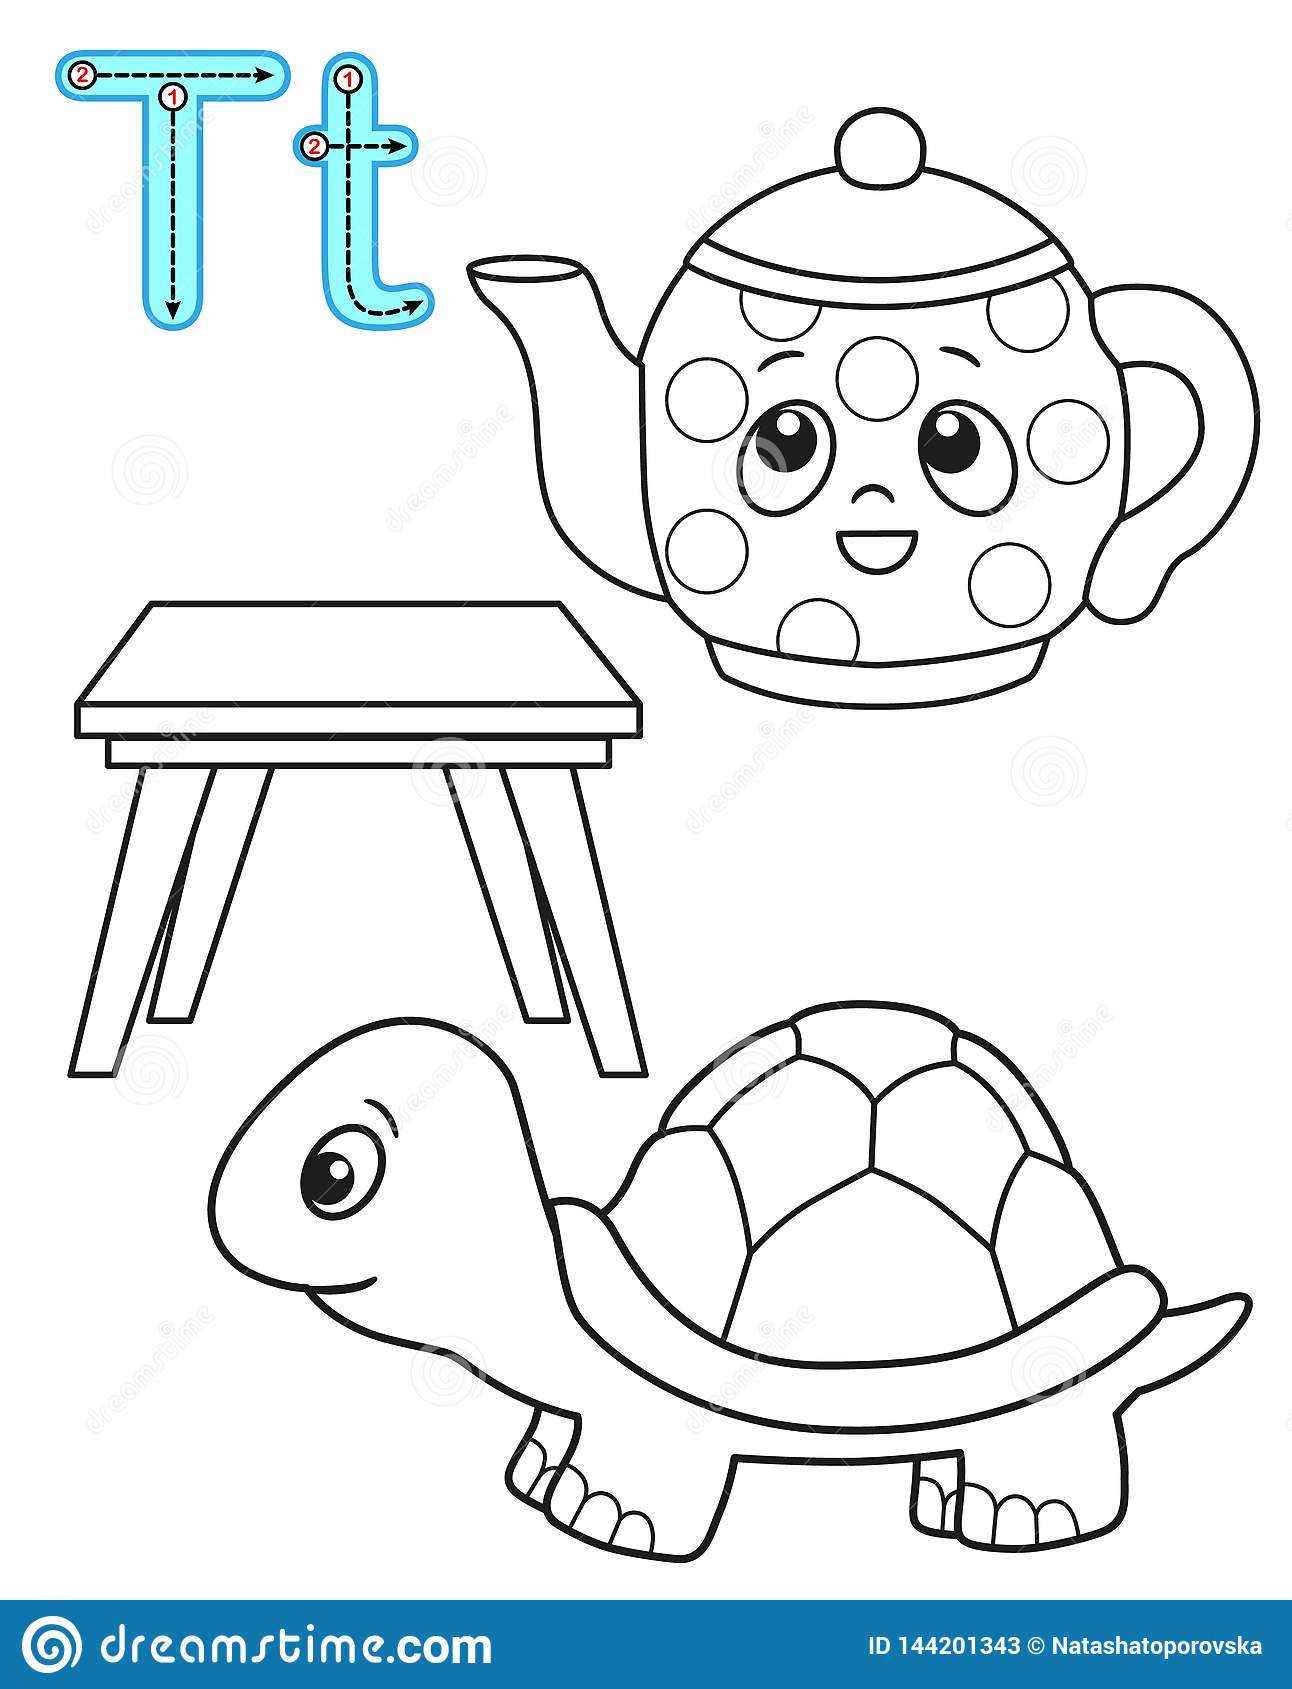 Printable Coloring Page For Kindergarten And Preschool. Card For ... | 1689x1292